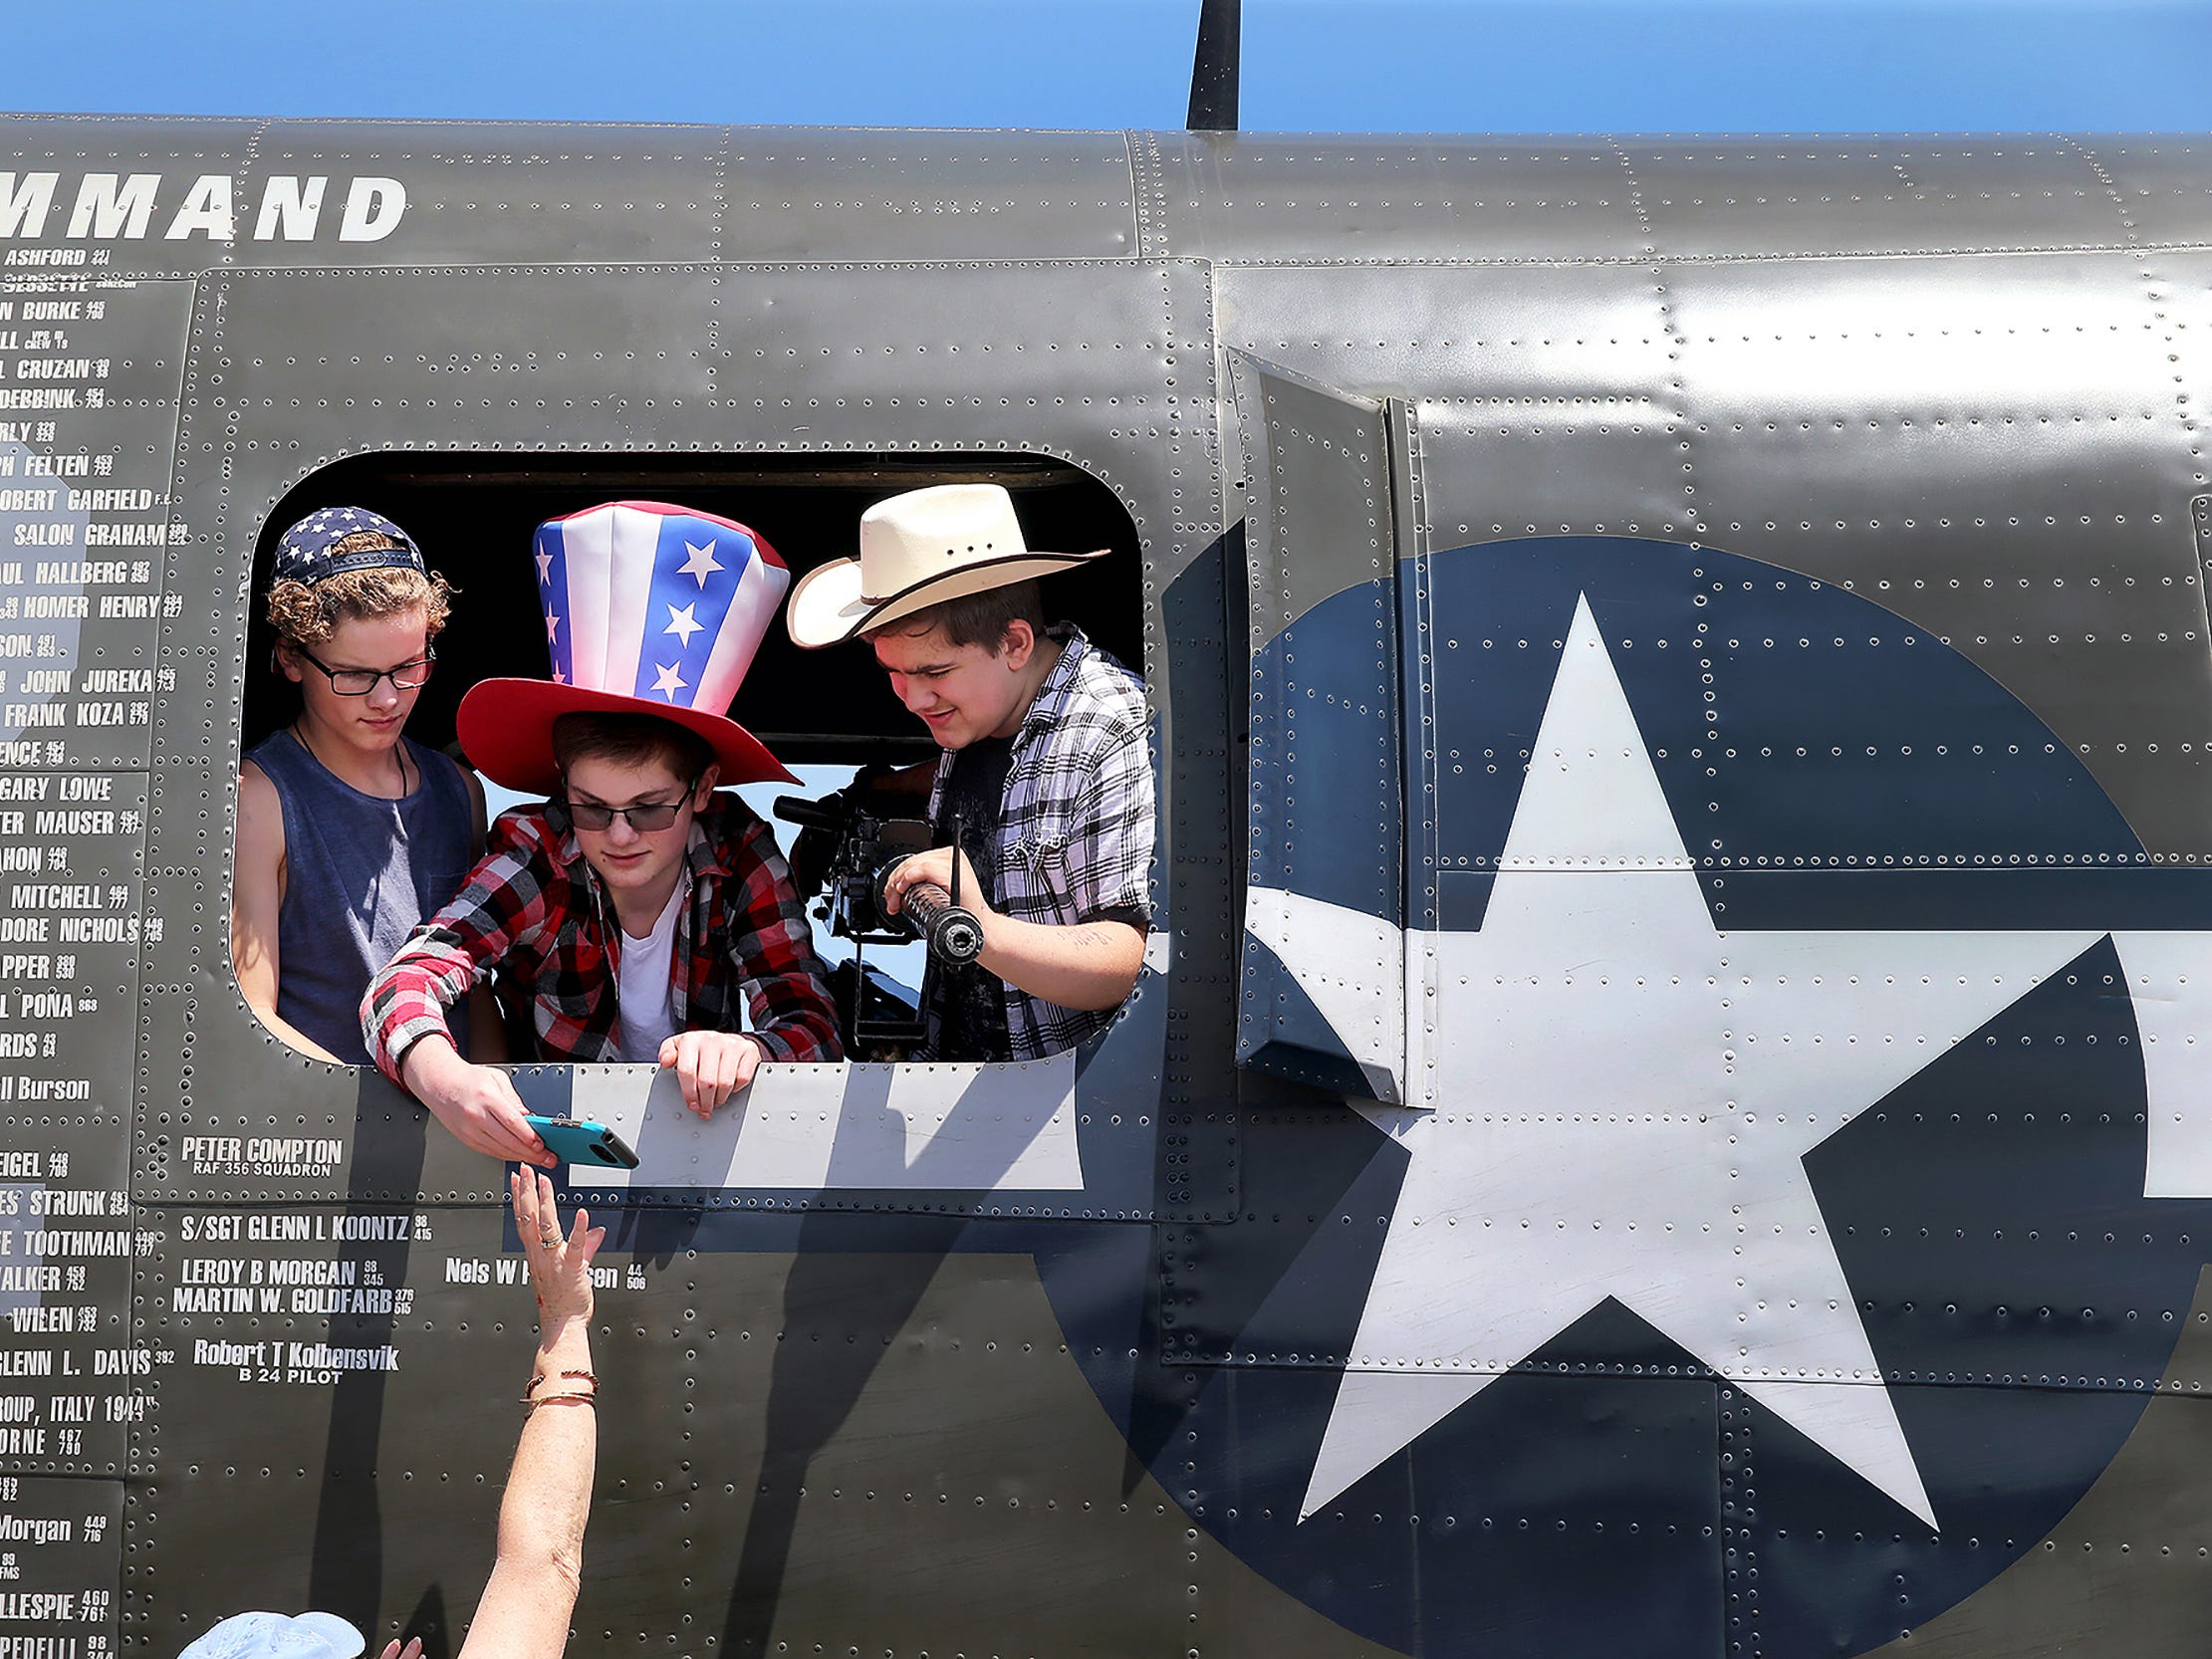 Brennan Parker, 13, center, of Gig Harbor wearing his patriotic Uncle Sam hat gets back his cell phone after getting a photo taken with his friends Logan Parrish, 13, left, of Gig Harbor, and Chris Desira, 13, right, of Lakebay. inside a Consolidated B-24 Liberator World War II aircraft at the Bremerton National Airport on Tuesday June 19, 2018. The Wings of Freedom Tour with other vintage World War II planes runs until Wednesday.